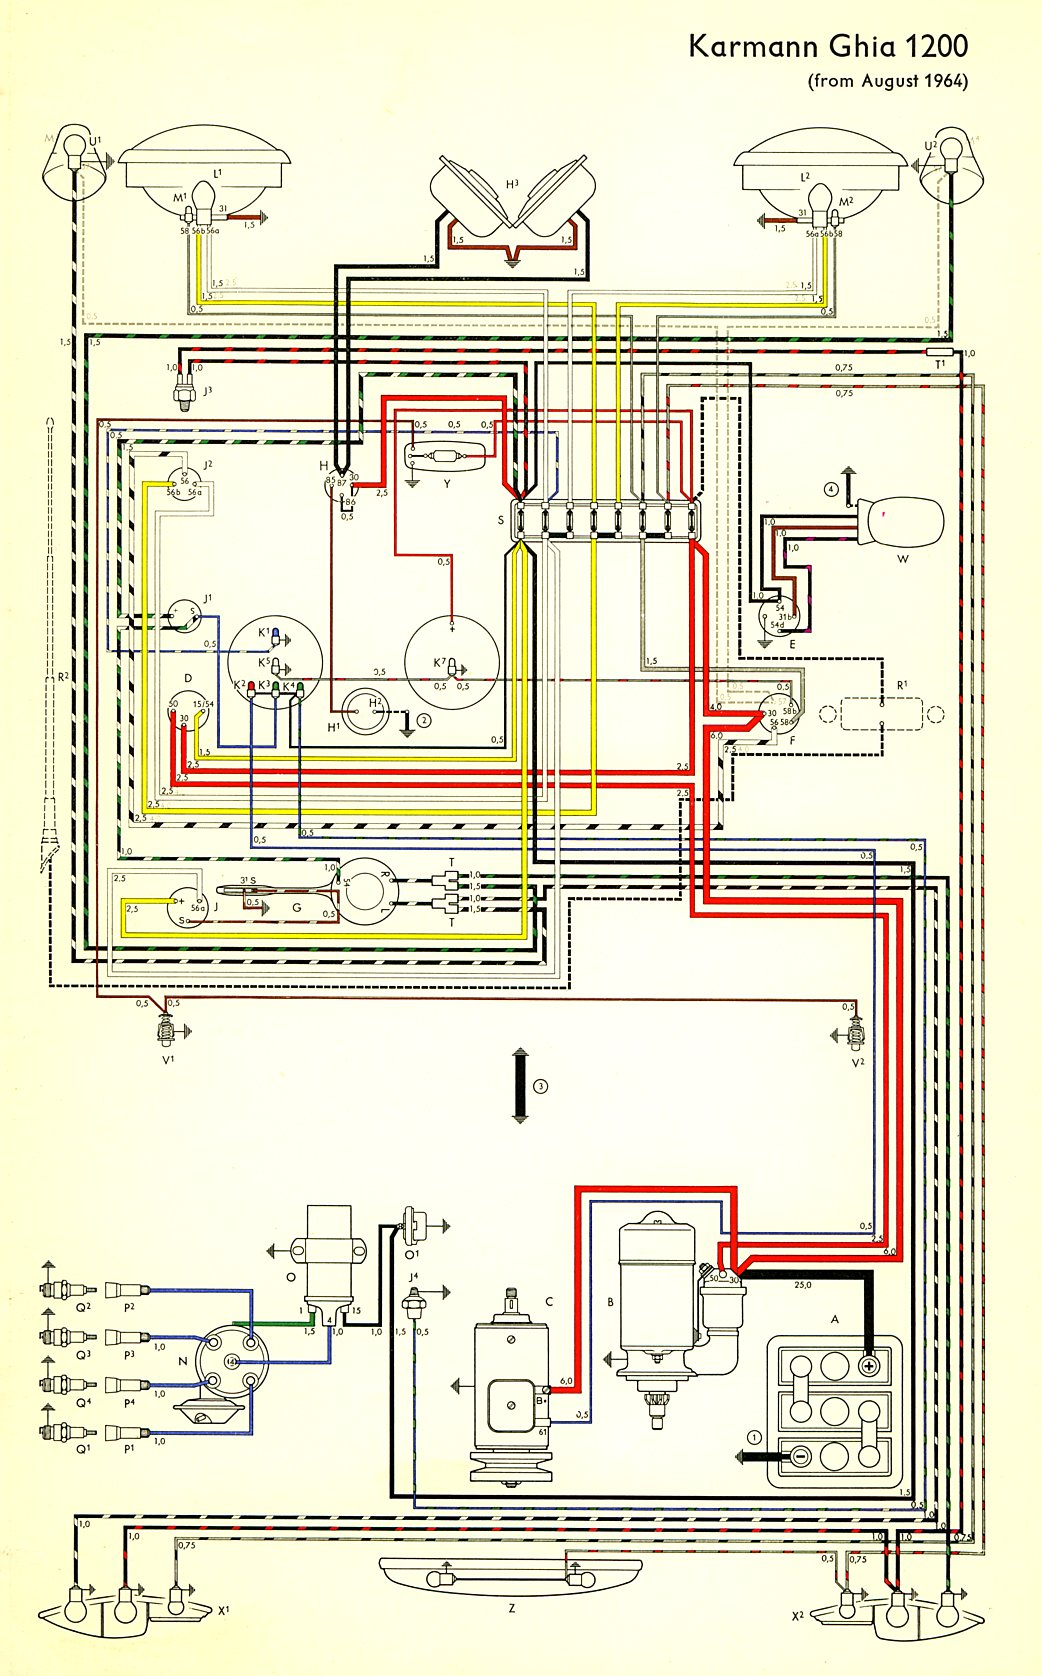 ghia wiring diagram thesamba.com :: karmann ghia wiring diagrams